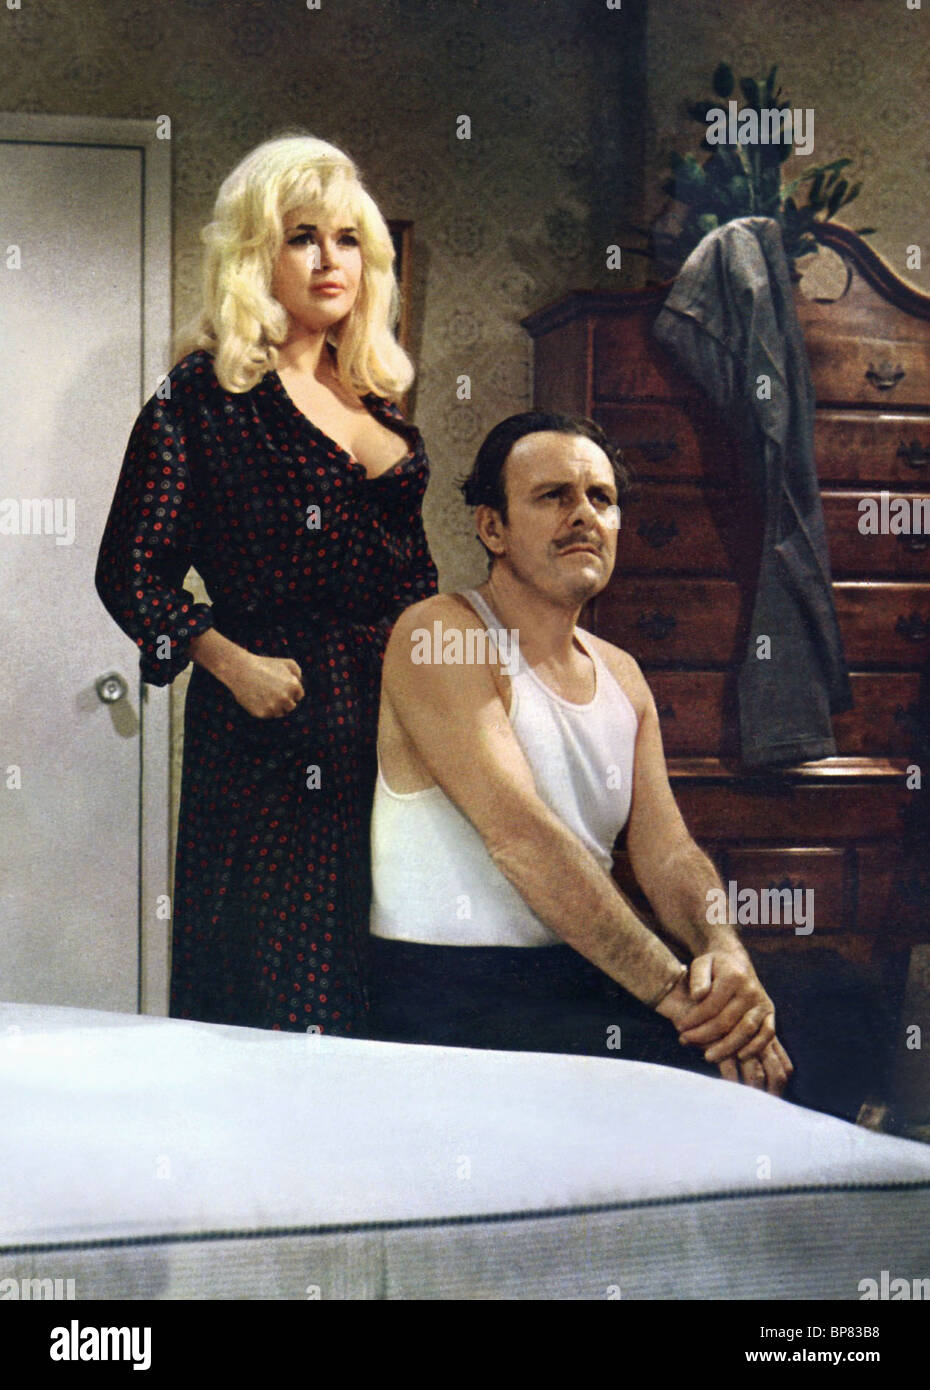 Jayne mansfield terry thomas a guide for the married man 1967